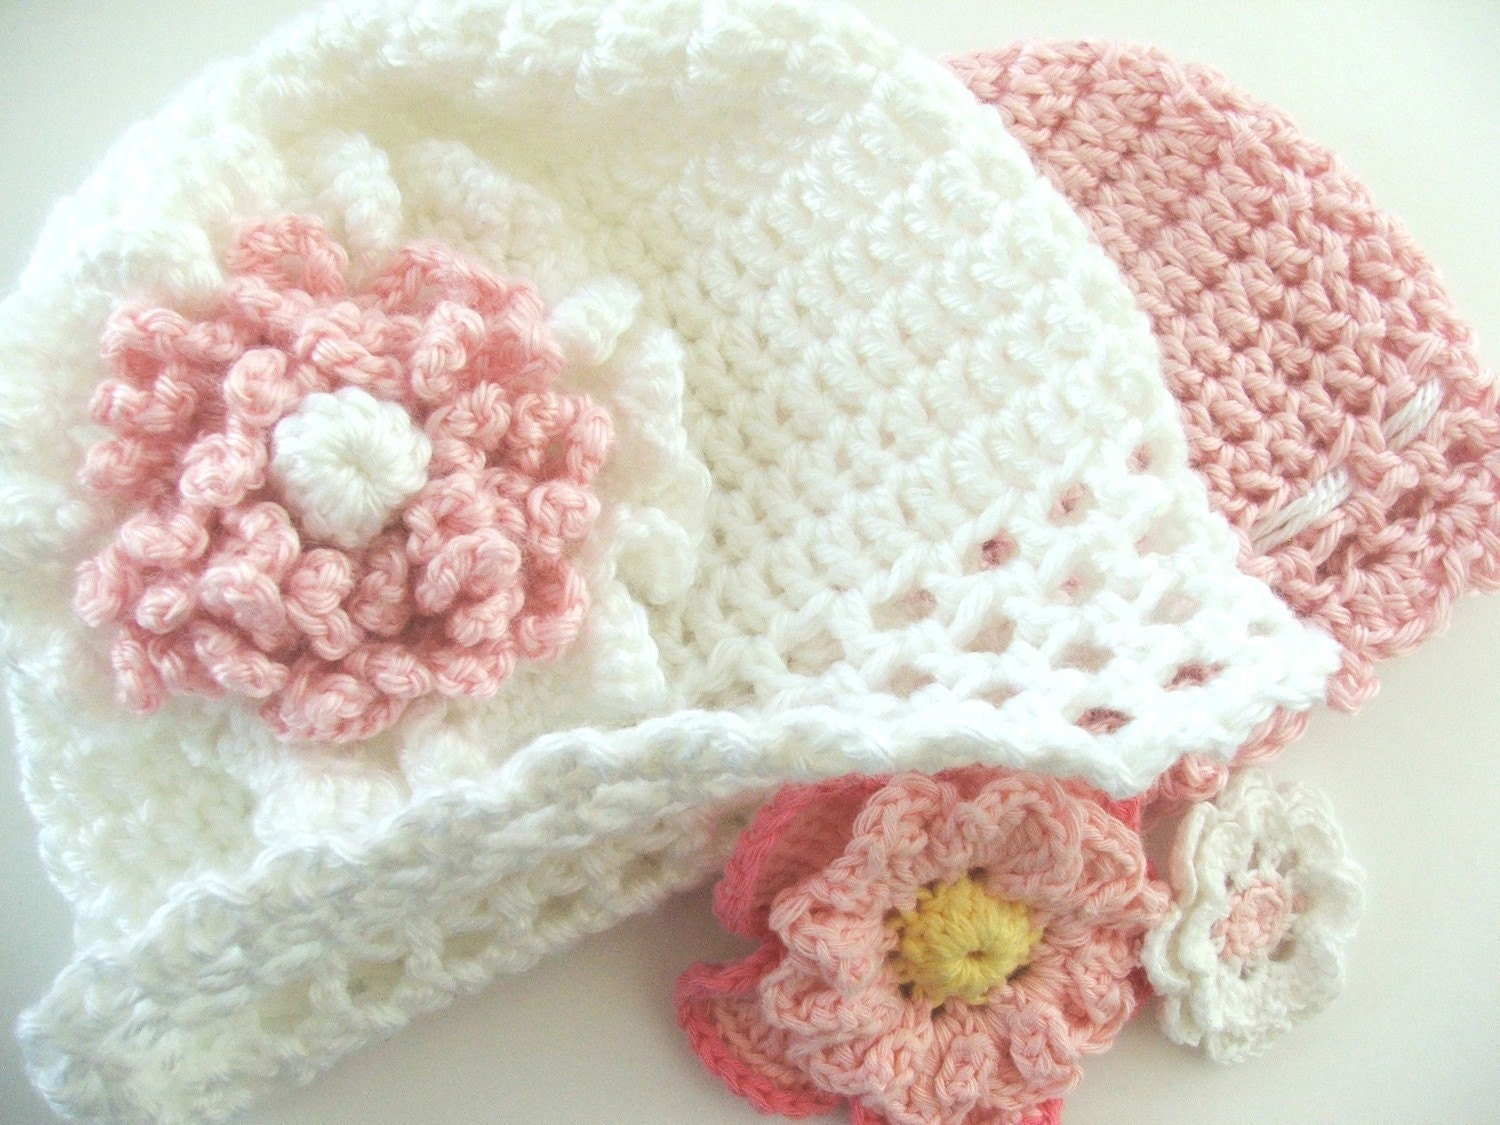 Crochet Stitches Baby Hats : Baby Hat Crochet PATTERN - Fast and Easy Instant Download CROCHET ...